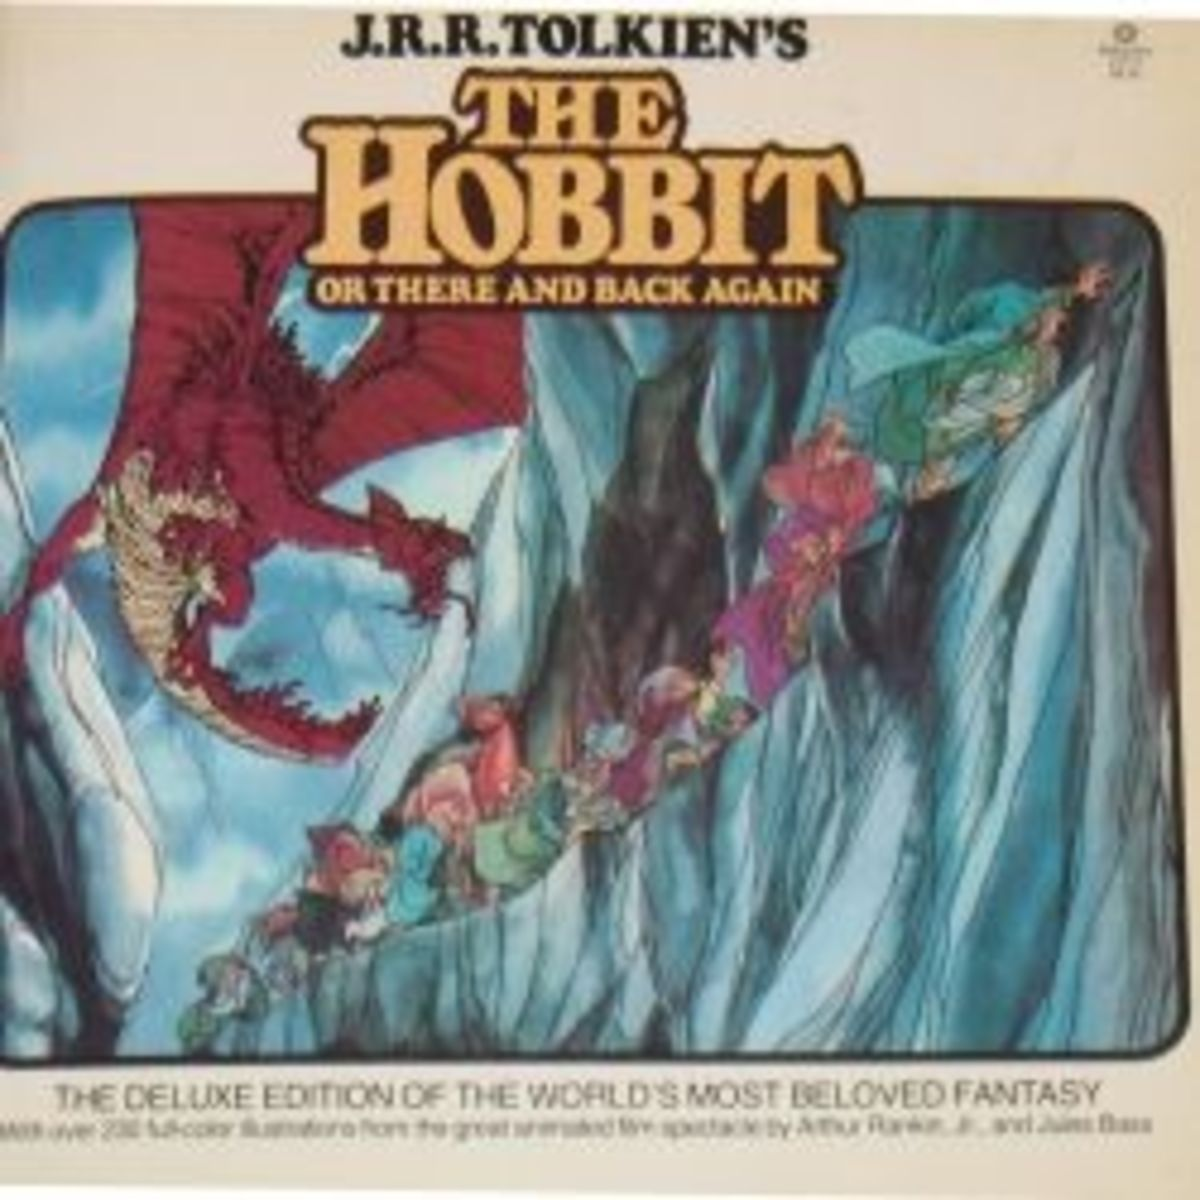 Cover of The Hobbit book, illustrated by Arthur Rankin, Jr. and Jules Bass.